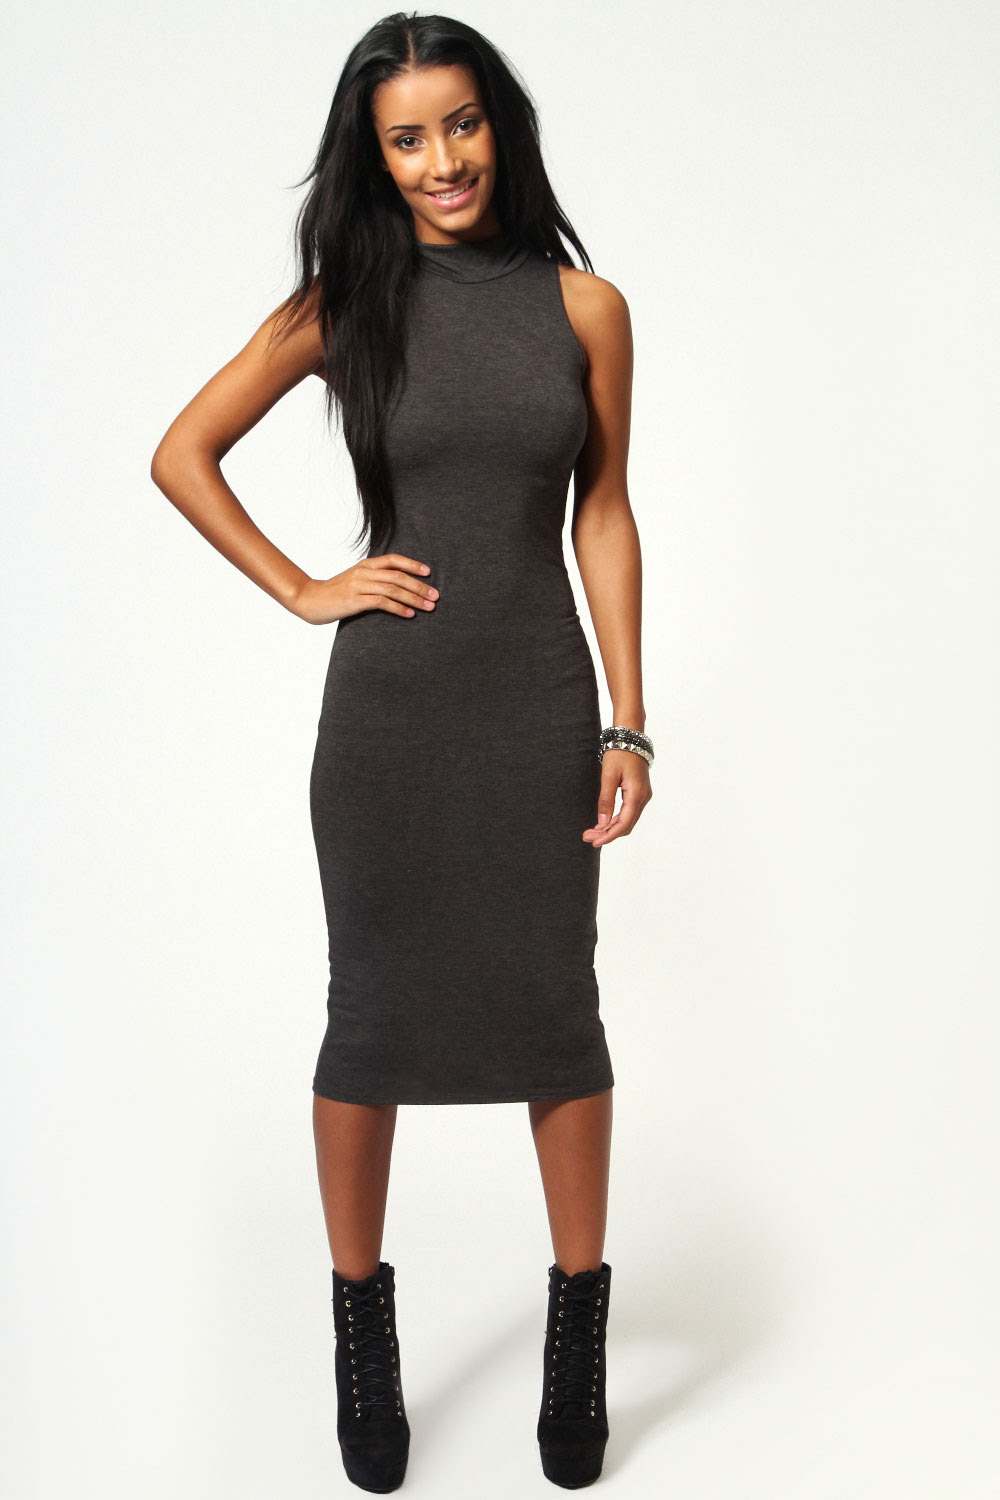 Over wear what bodycon dress to consultant rome